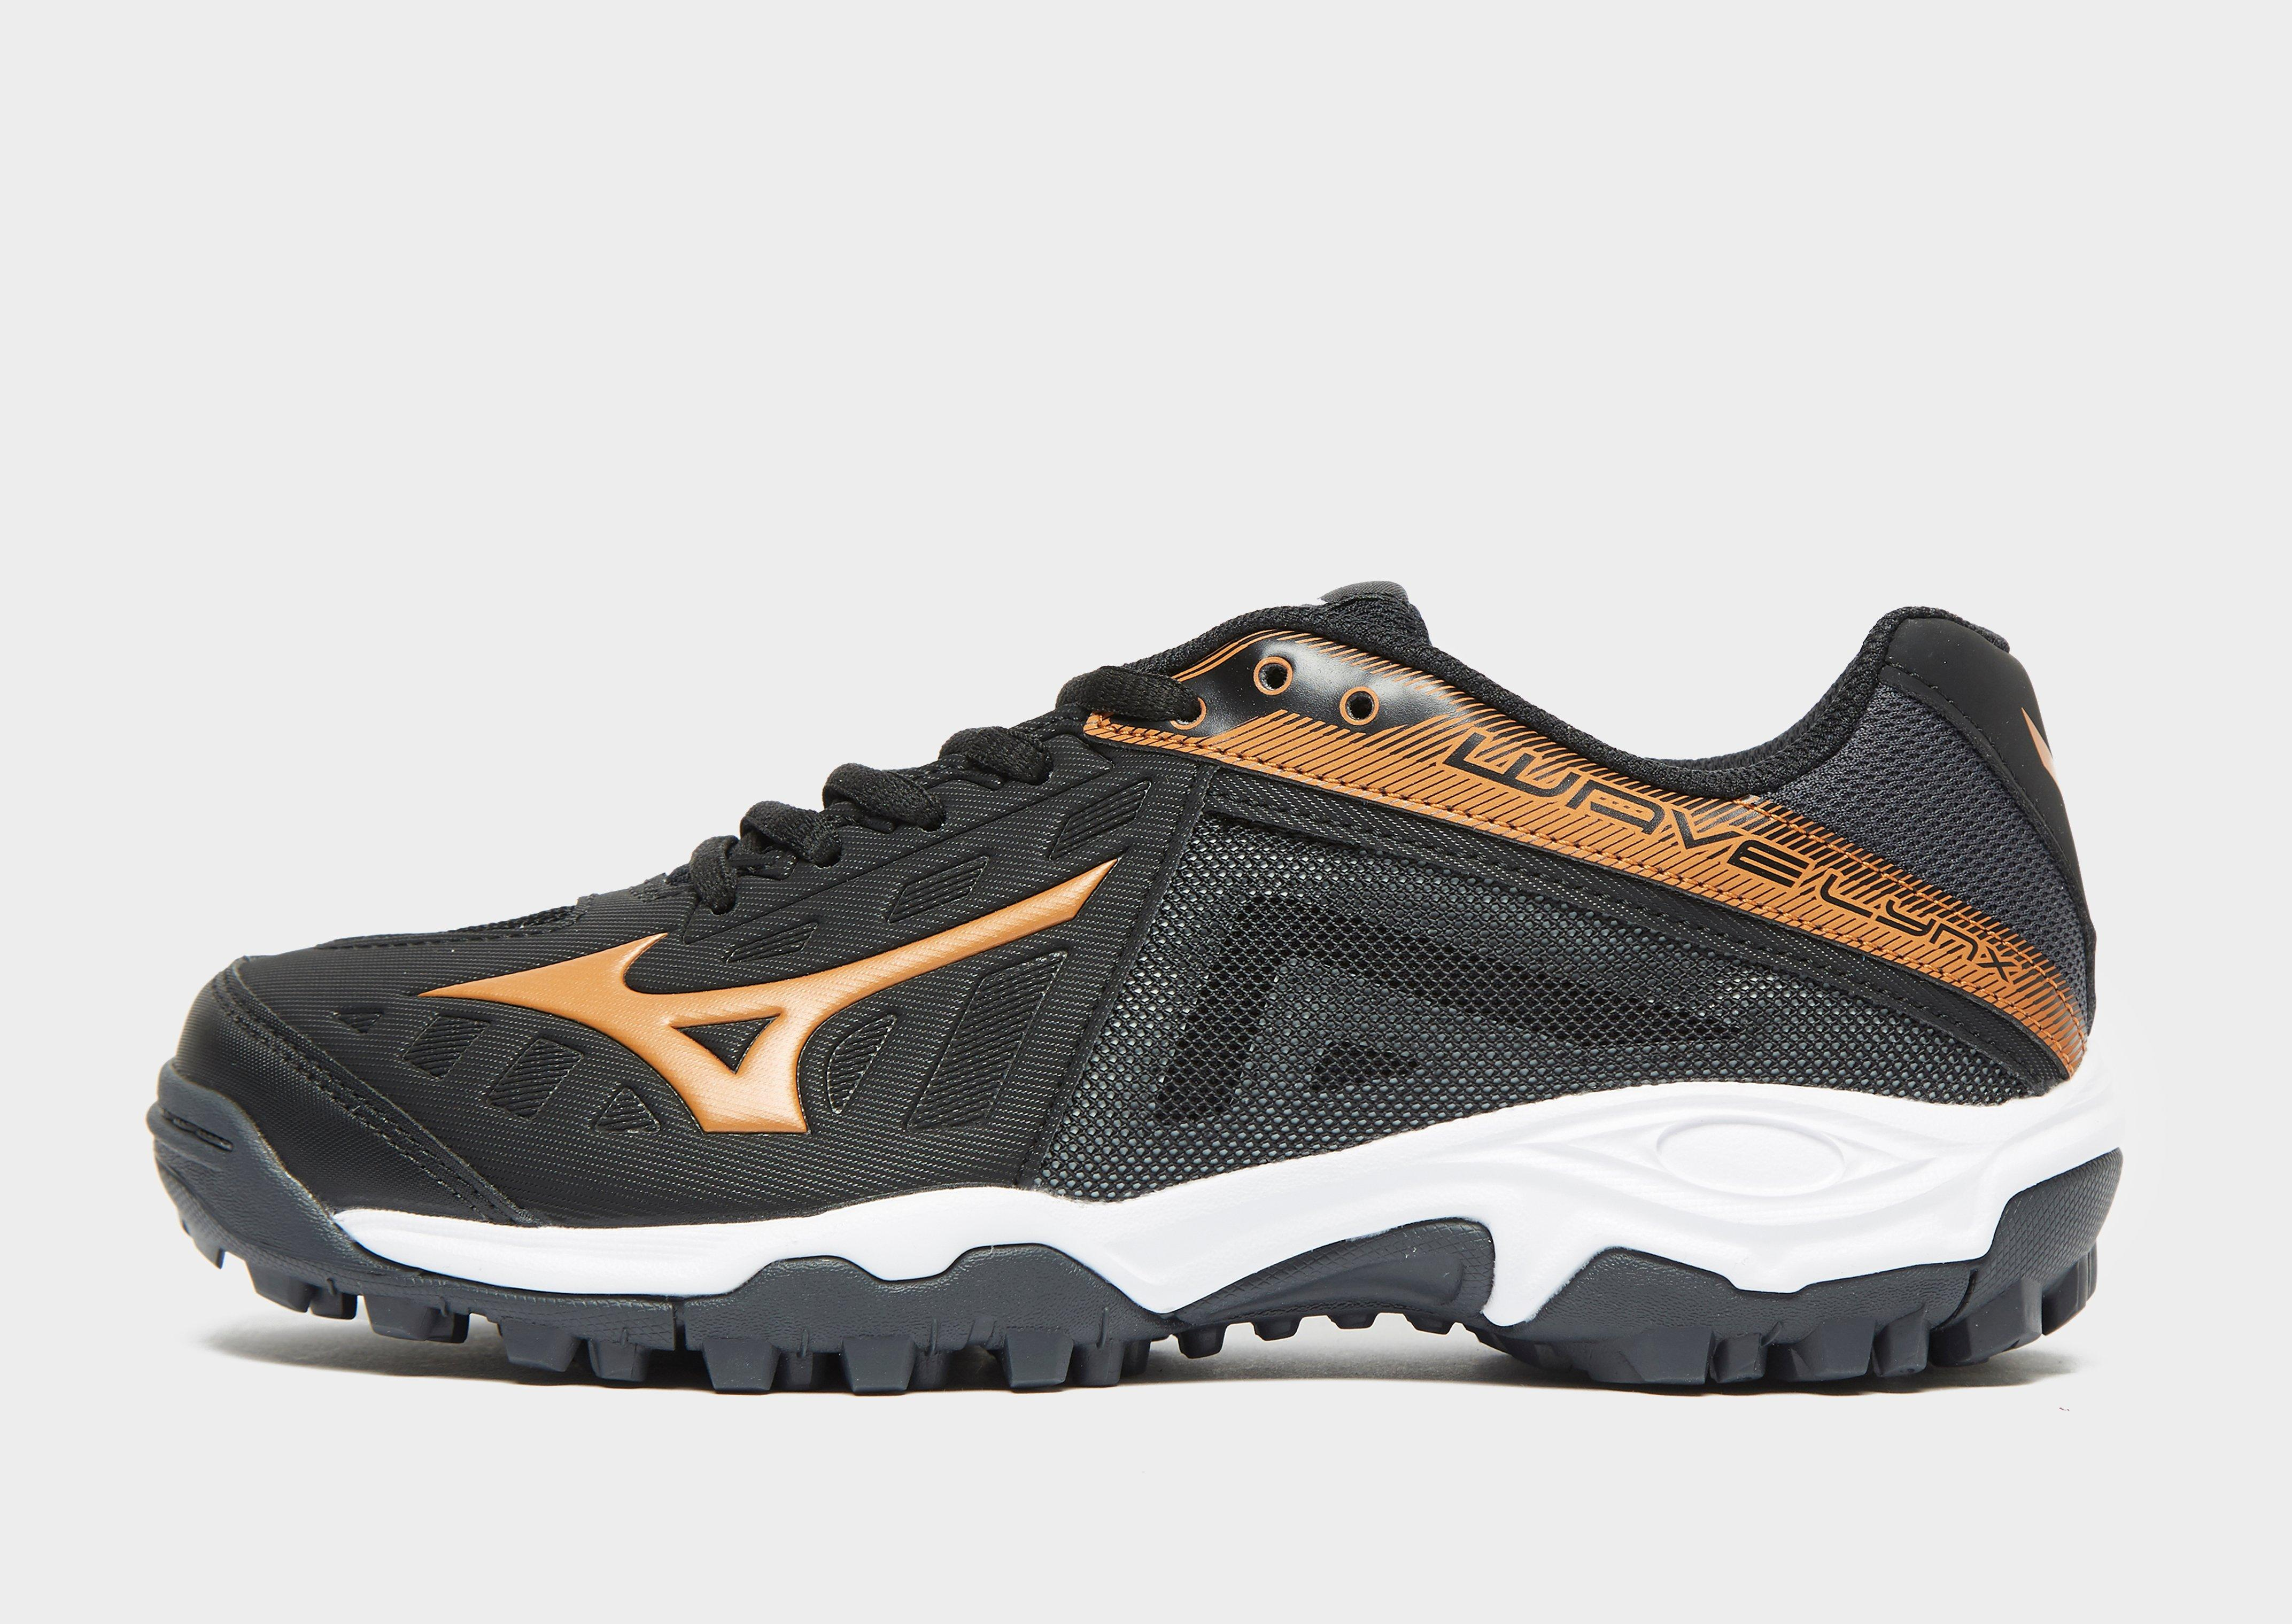 mizuno mens running shoes size 9 years old mujer